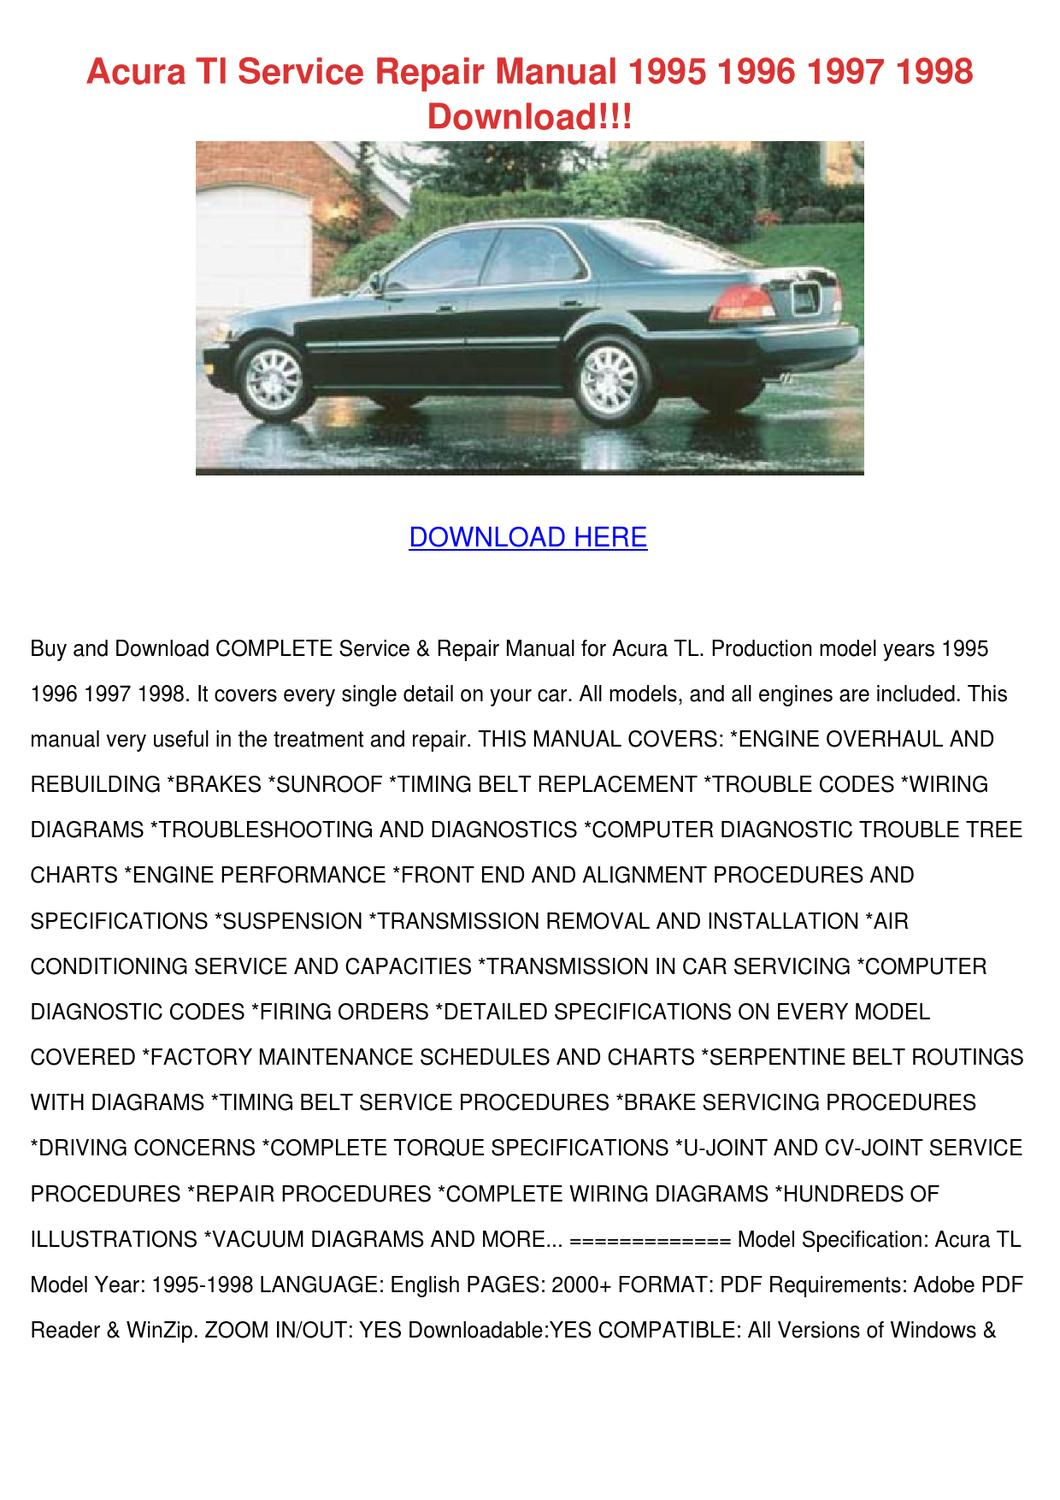 Acura Tl Service Repair Manual 1995 1996 1997 By Feliciadailey Issuu Wiring Diagram For Rl